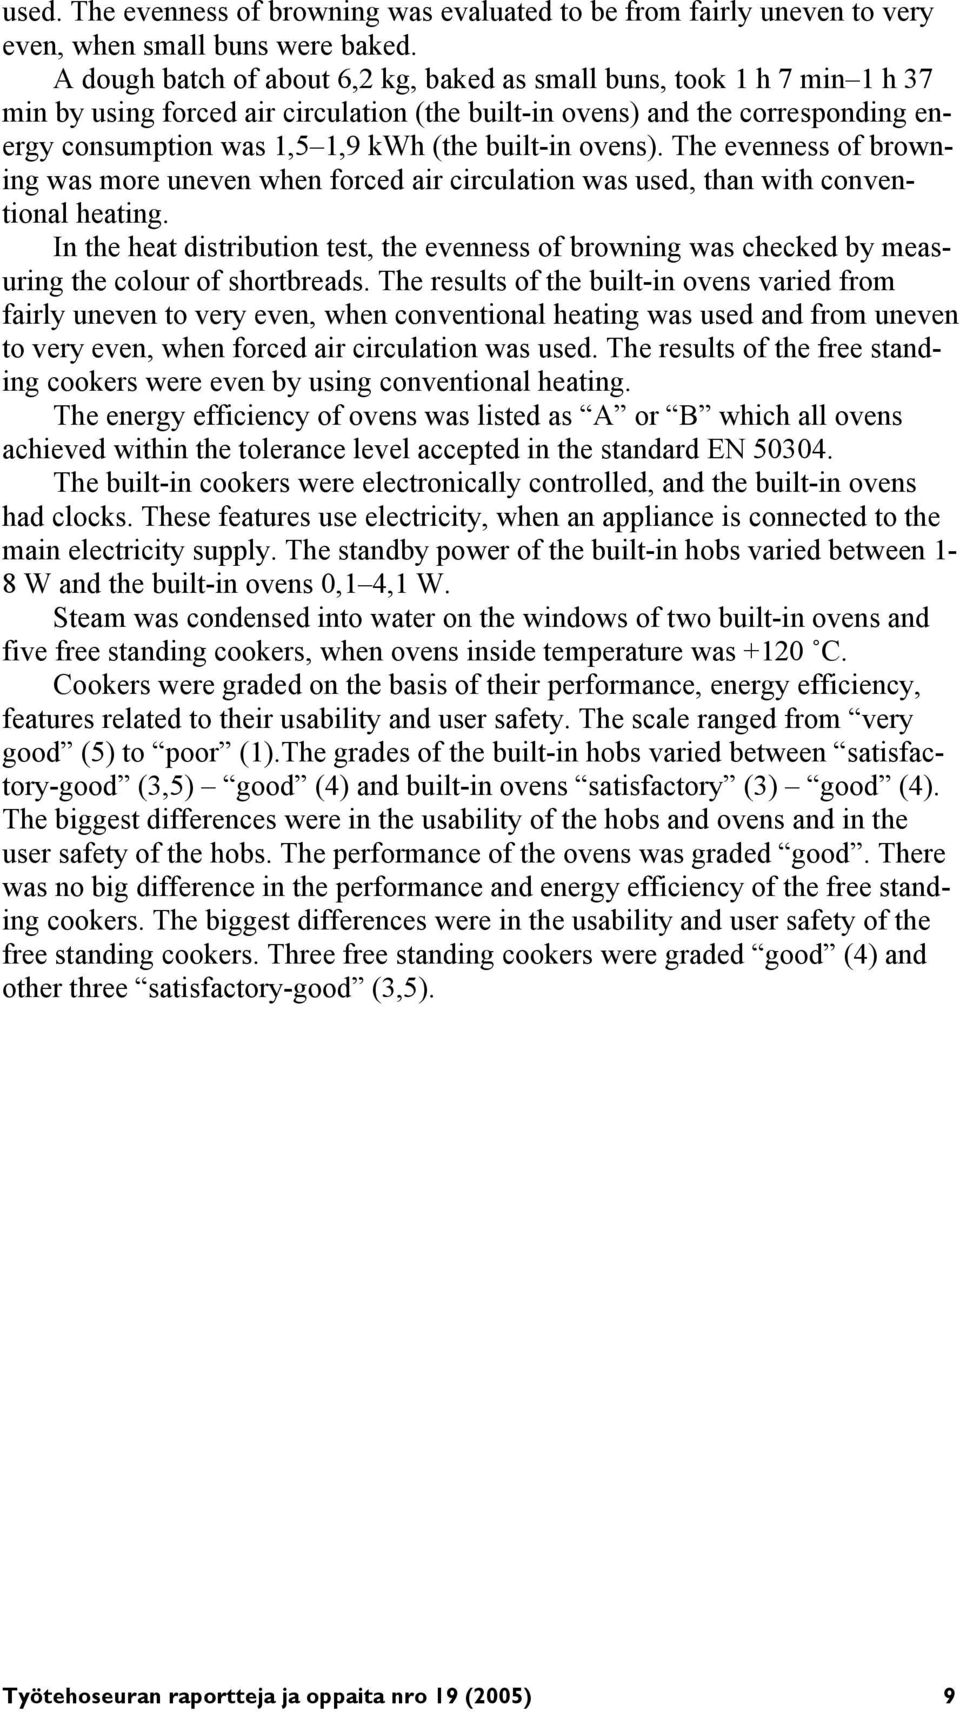 ovens). The evenness of browning was more uneven when forced air circulation was used, than with conventional heating.